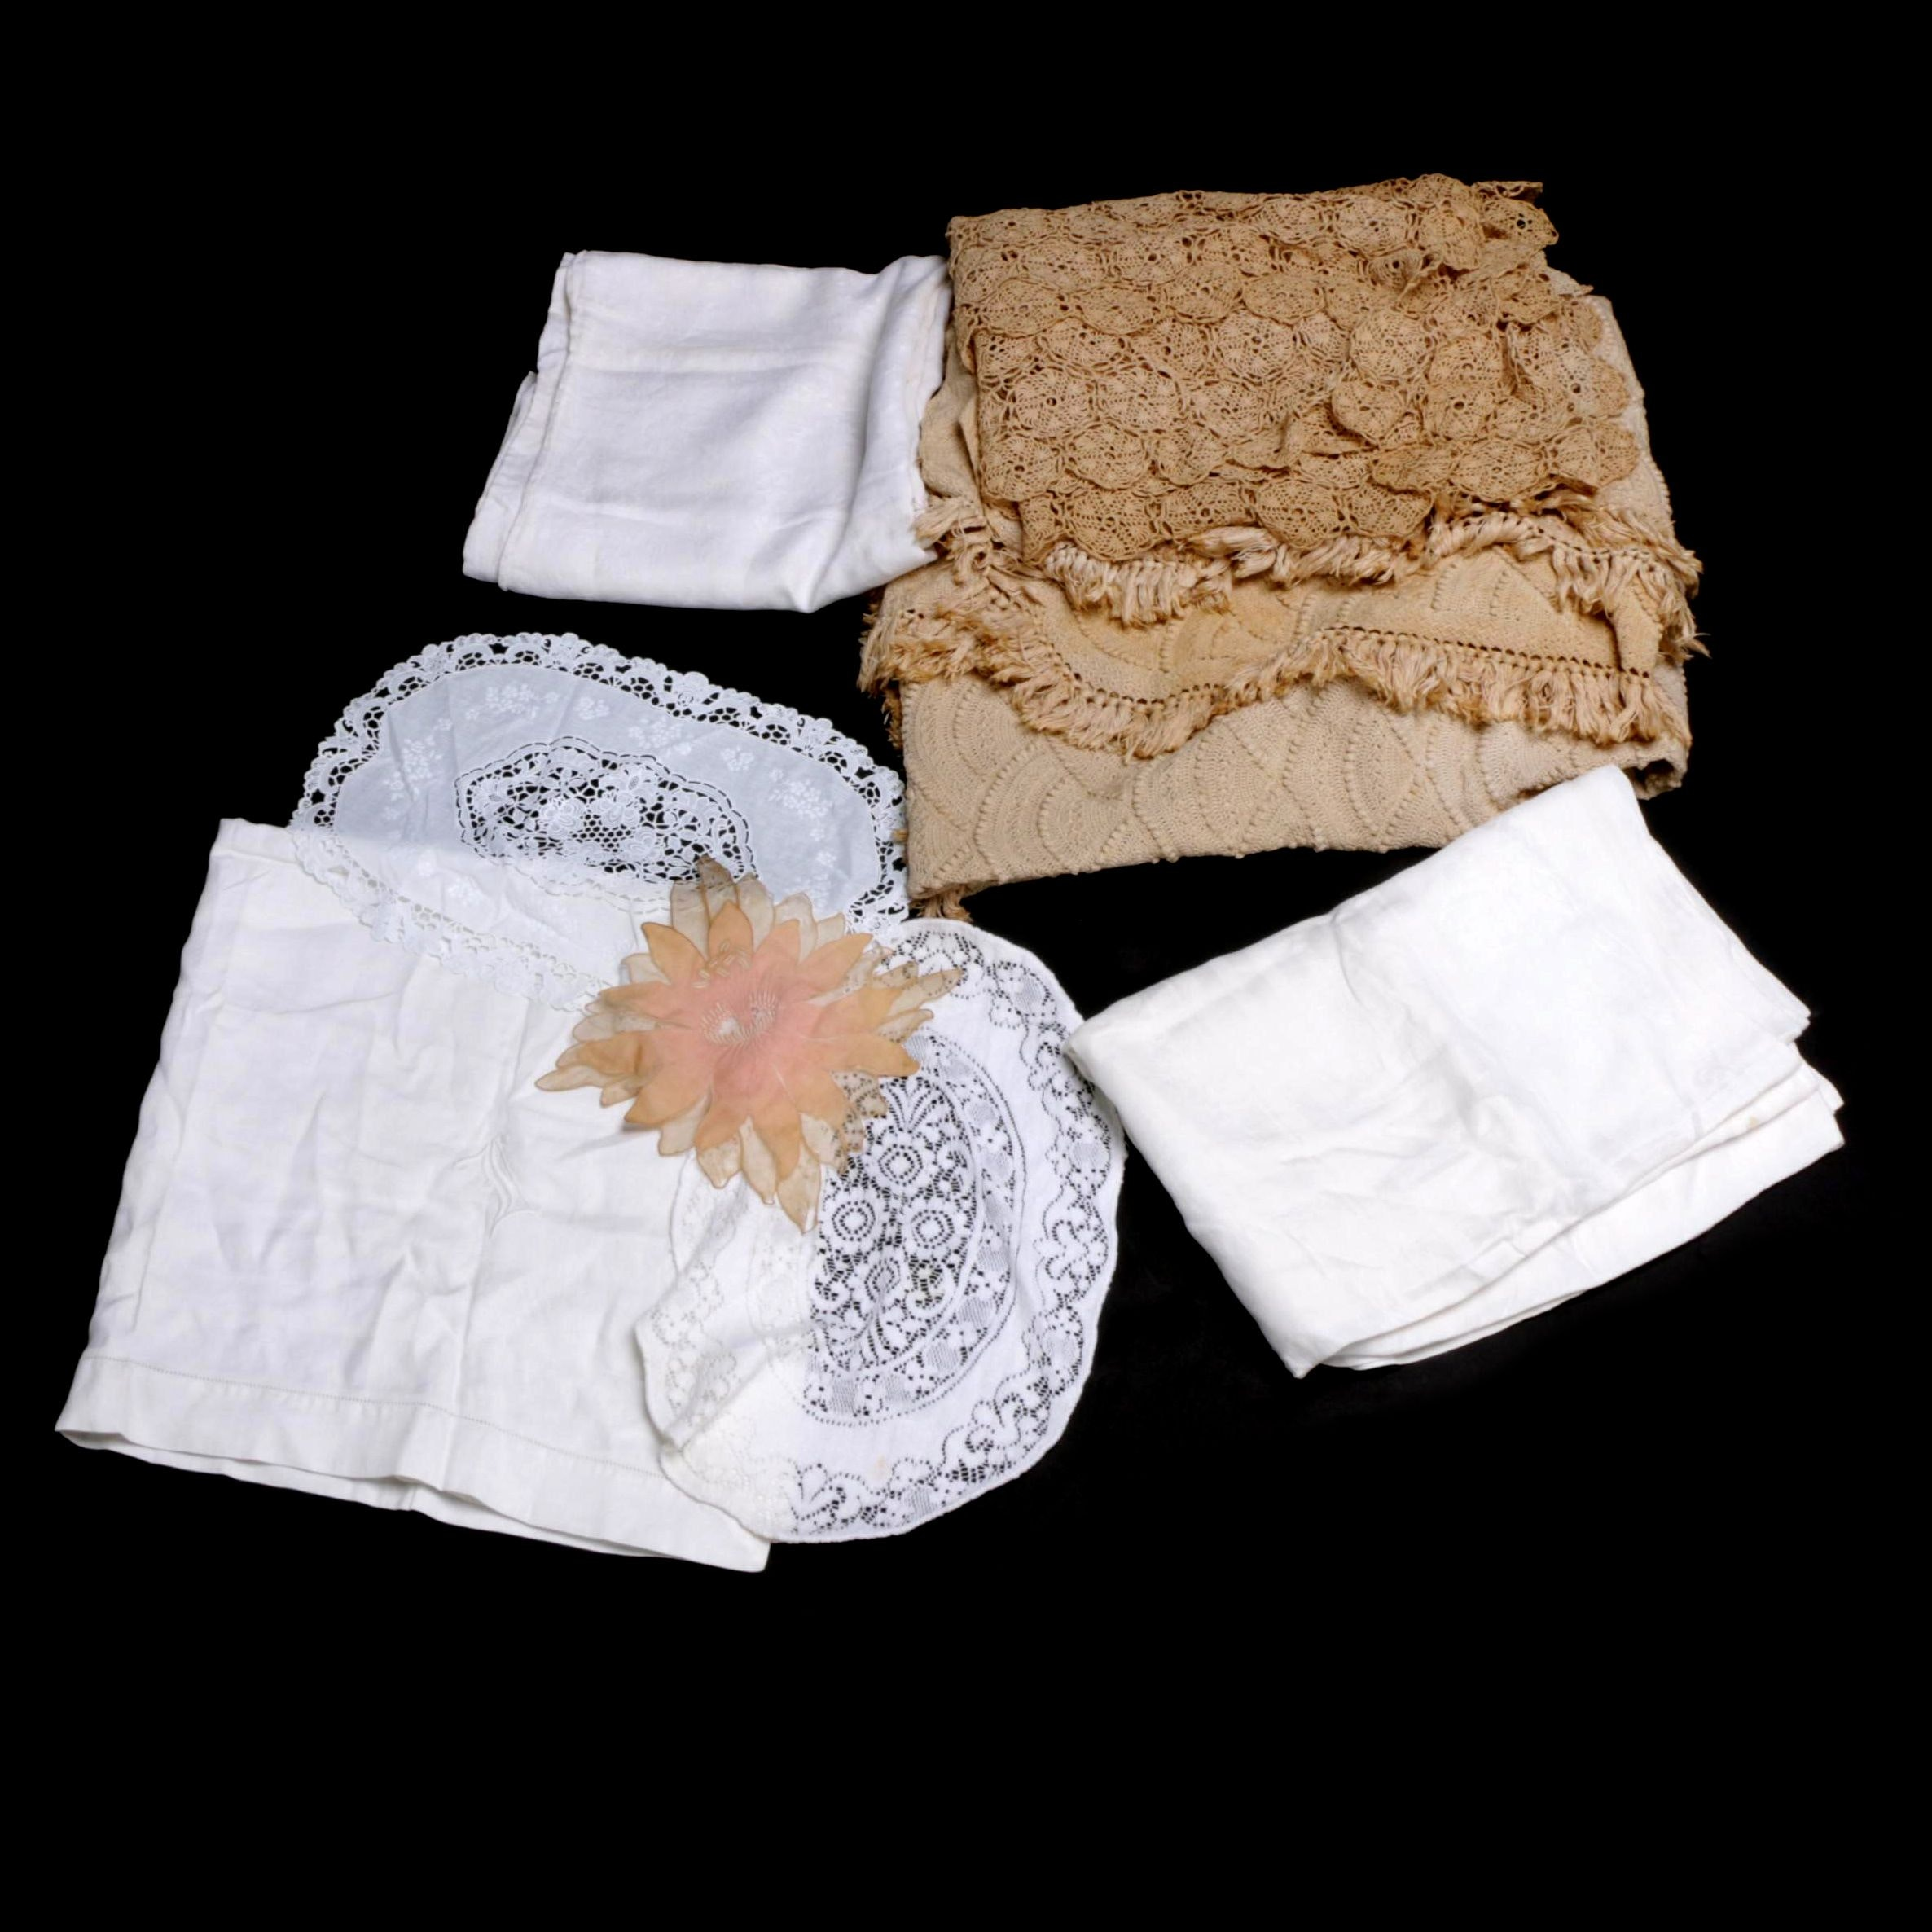 Vintage Bedding and Table Linens Including Crocheted Throw and Lace Doilies